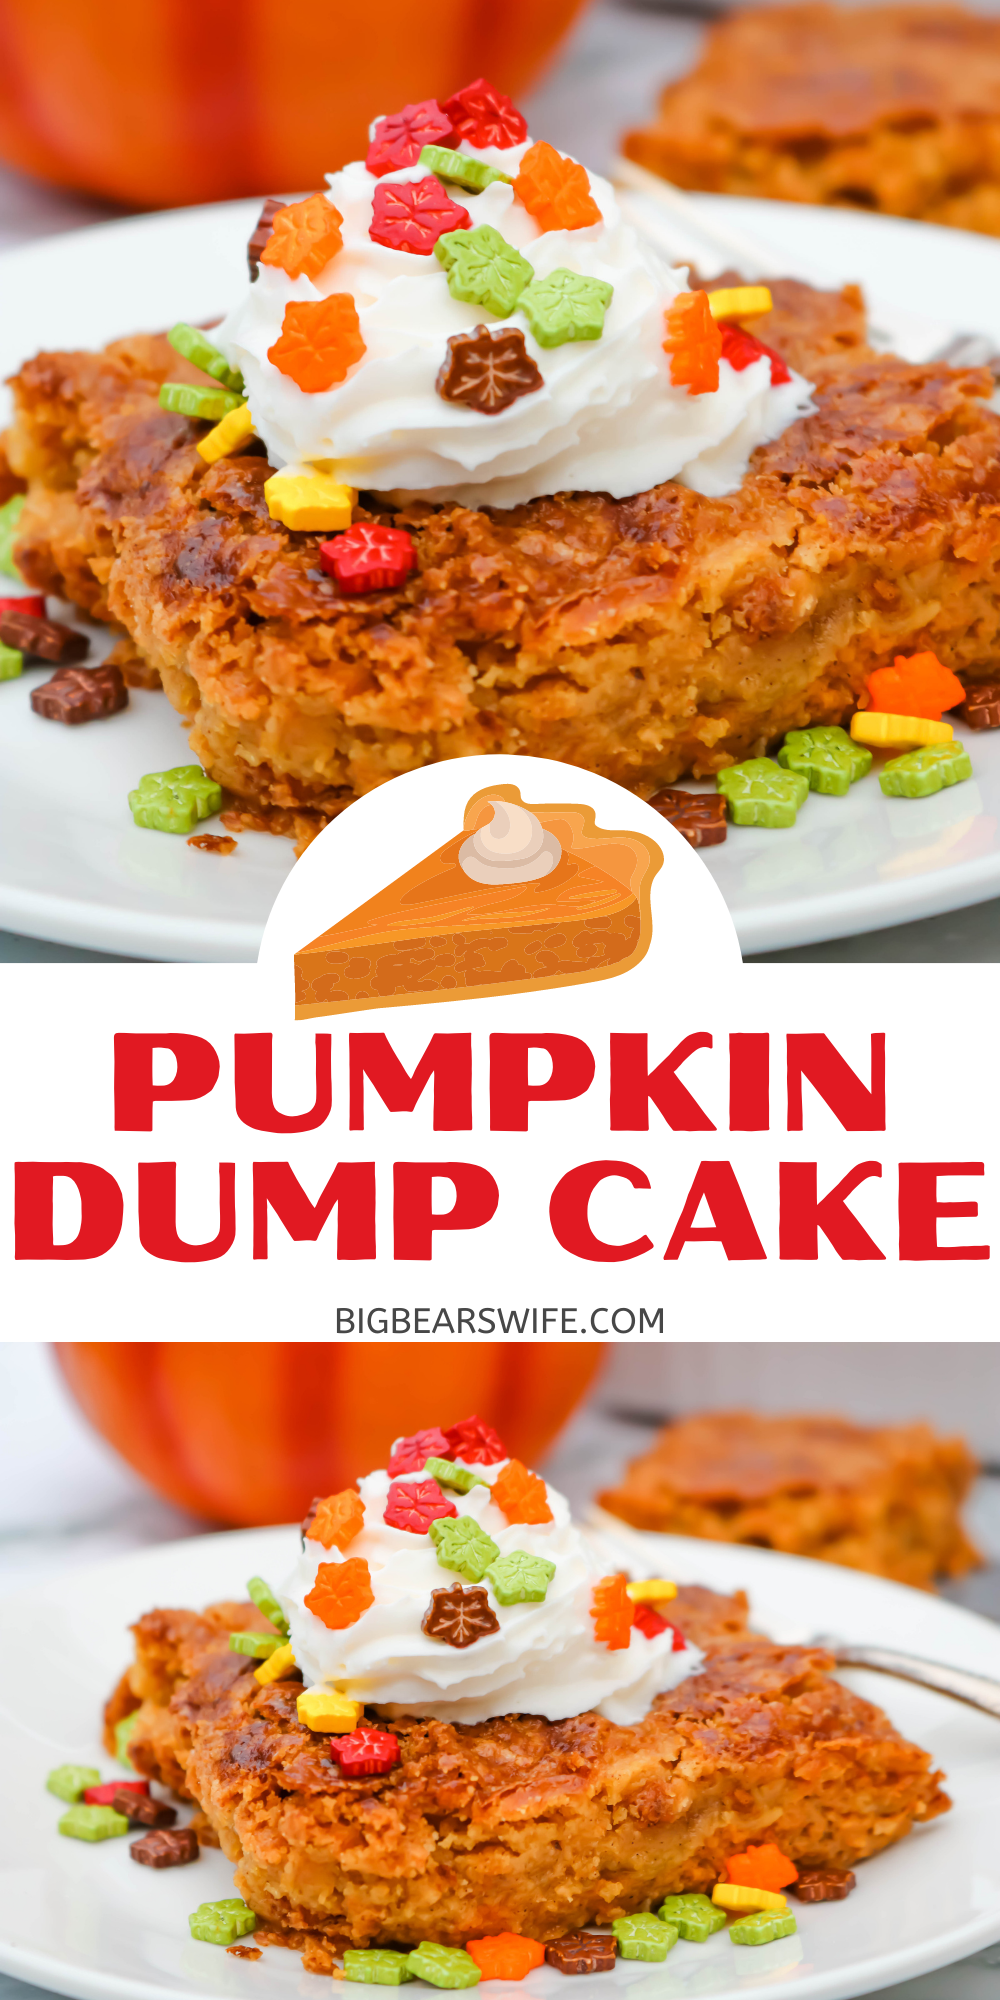 This Easy Pumpkin Dump Cake is one of the easiest fall desserts ever. This cake is a mix and dump type cake, it takes about 1 hour to bake and it taste like an upside down pumpkin pie!  via @bigbearswife